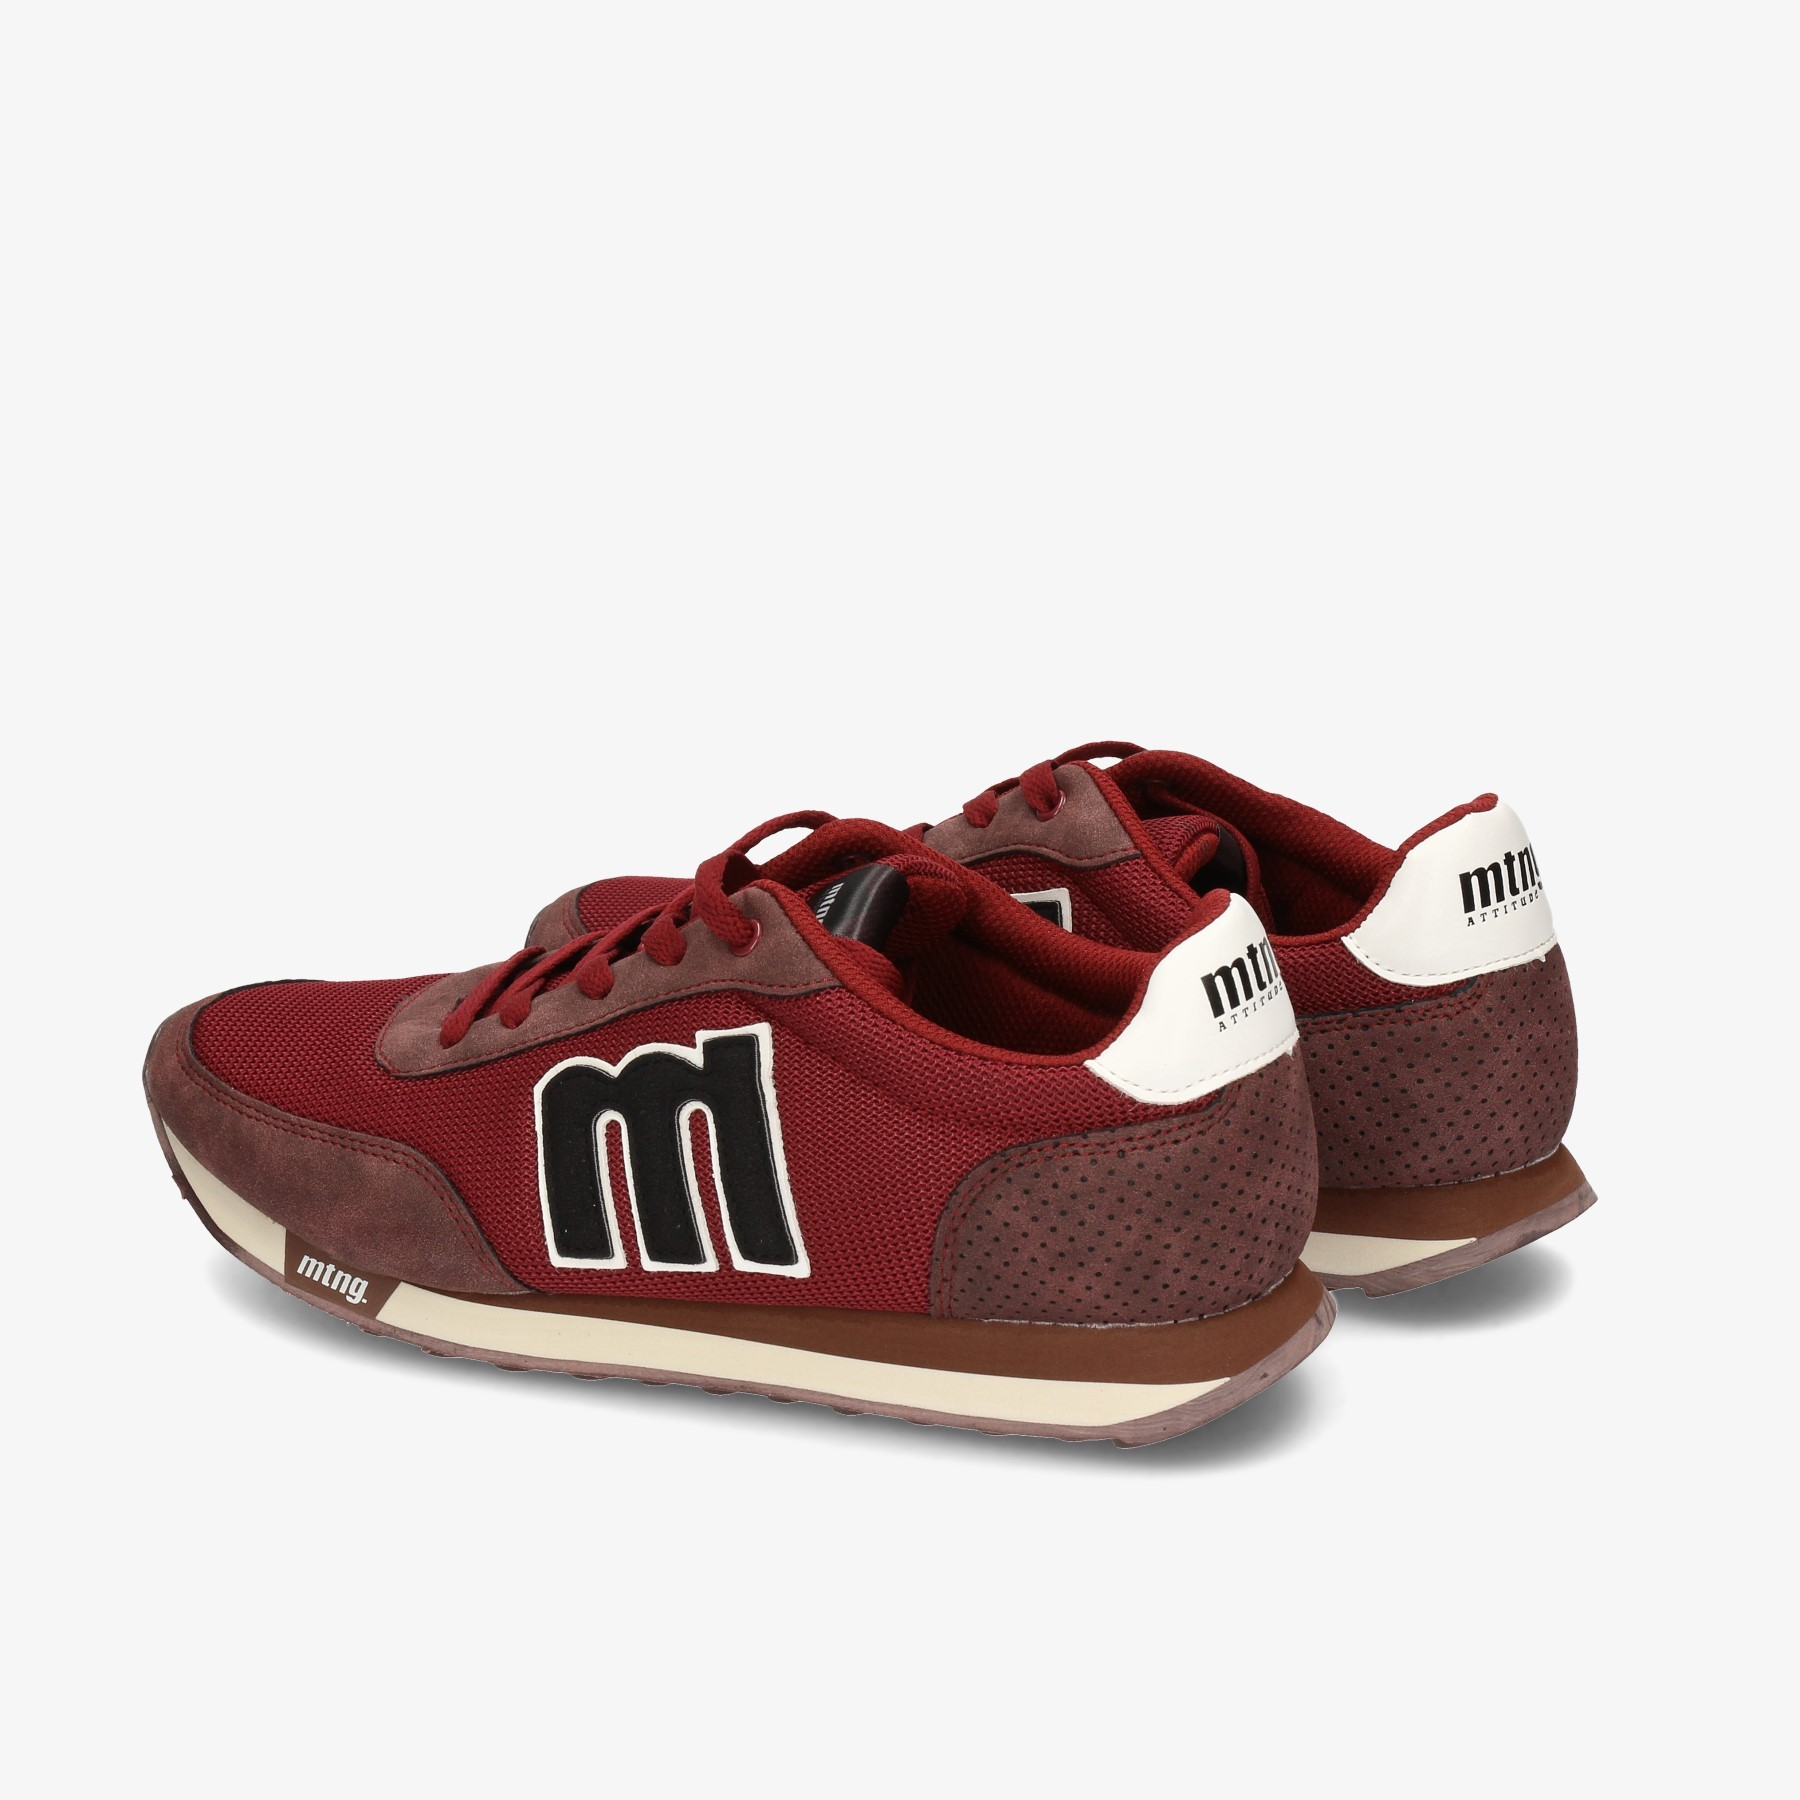 807a27d0 82600Pabloochoa shoes Sneakers Sneakers Mustang shoes Sneakers Mustang  82600Pabloochoa 31JuTFKlc